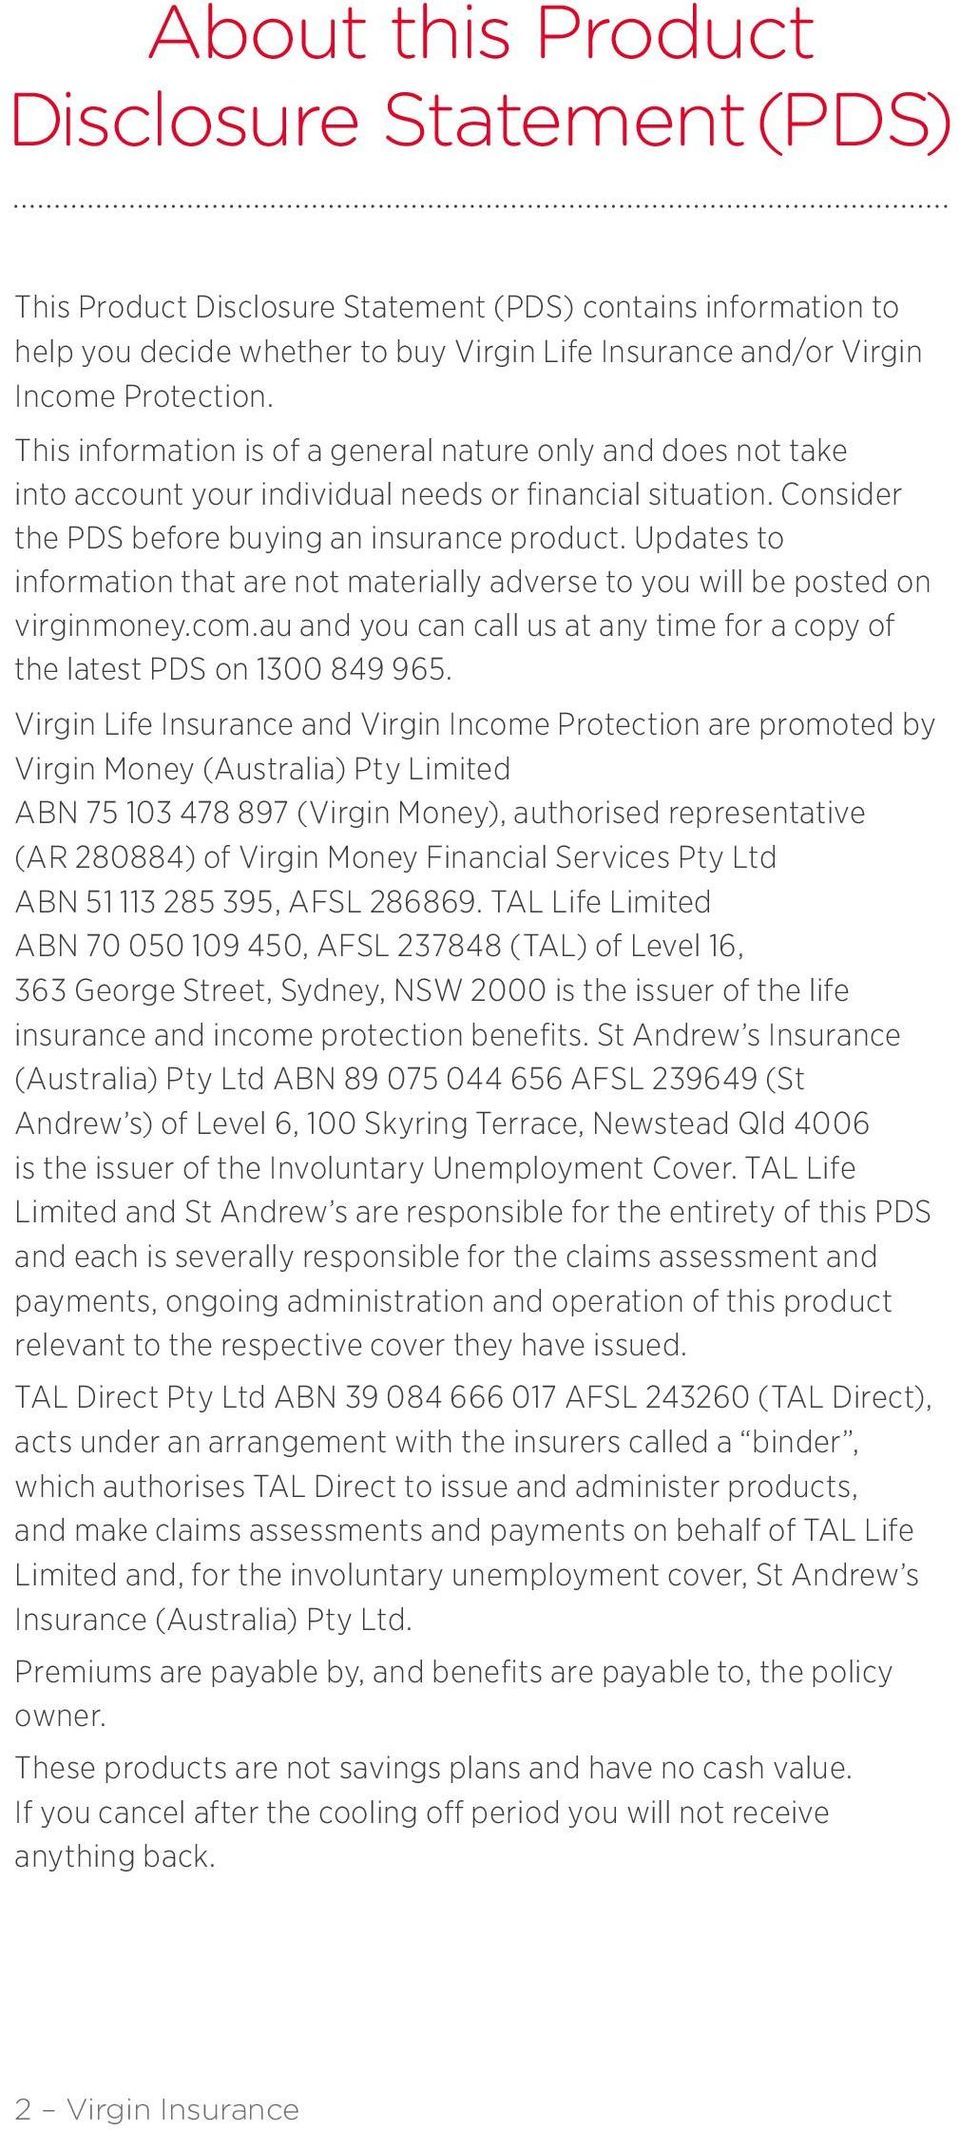 Updates to information that are not materially adverse to you will be posted on virginmoney.com.au and you can call us at any time for a copy of the latest PDS on 1300 849 965.